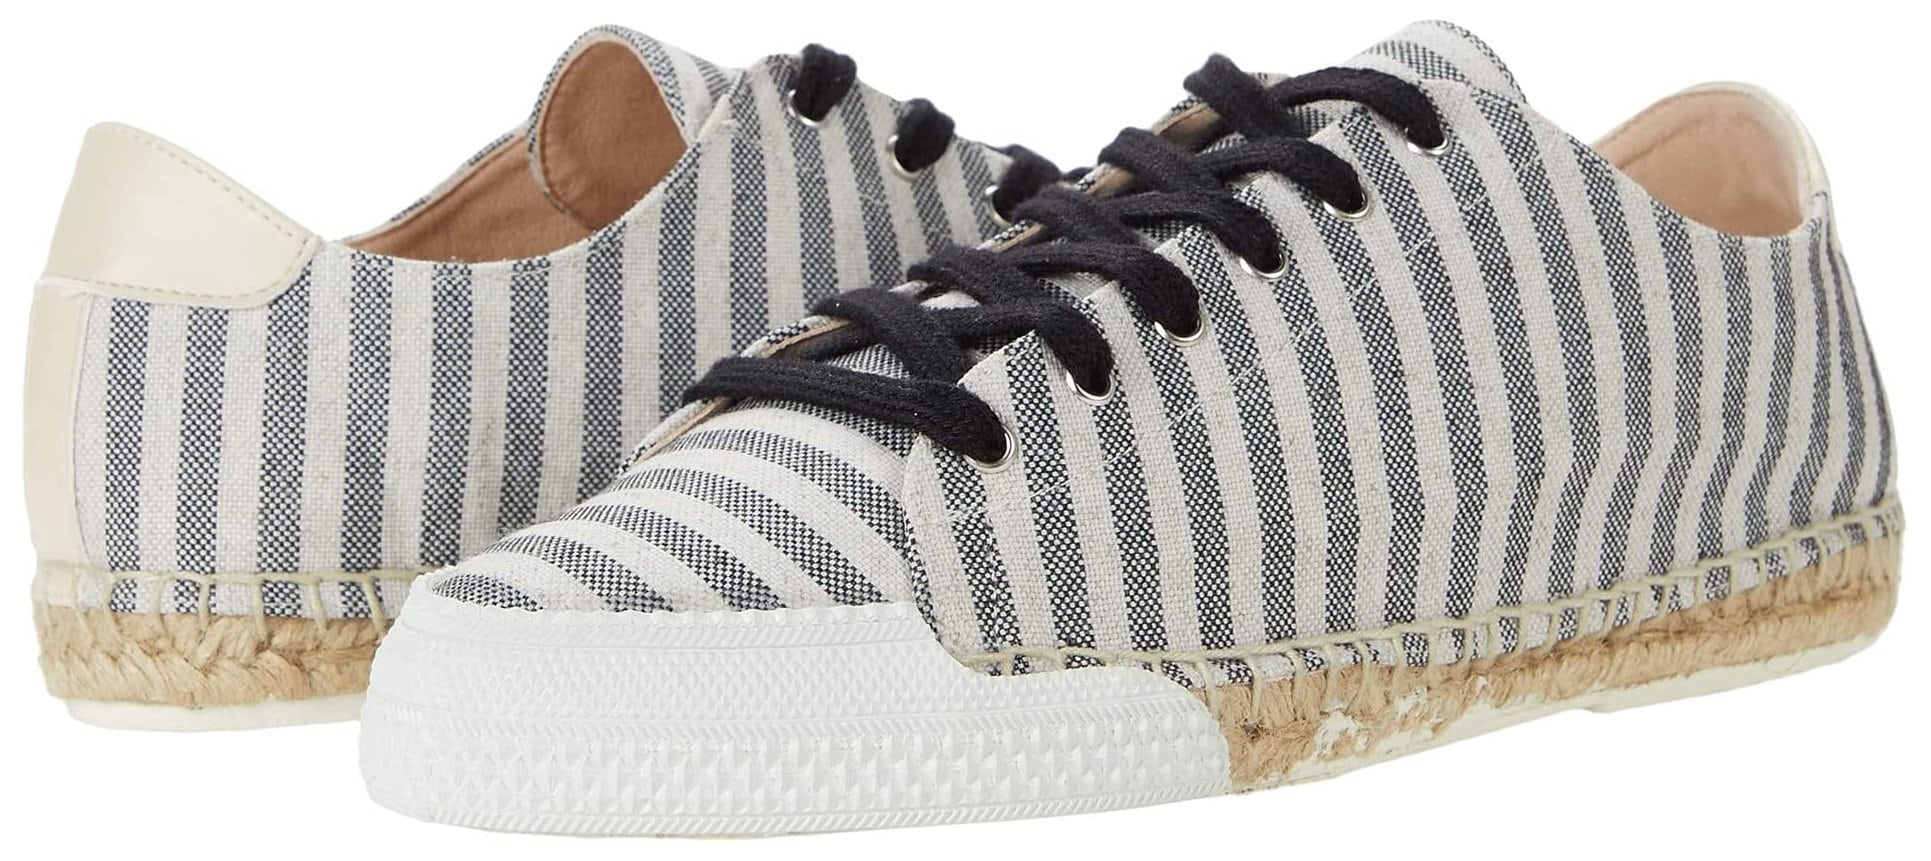 A handcrafted and hand-dyed espadrille sneaker with a lace-up closure and a jute-wrapped sole